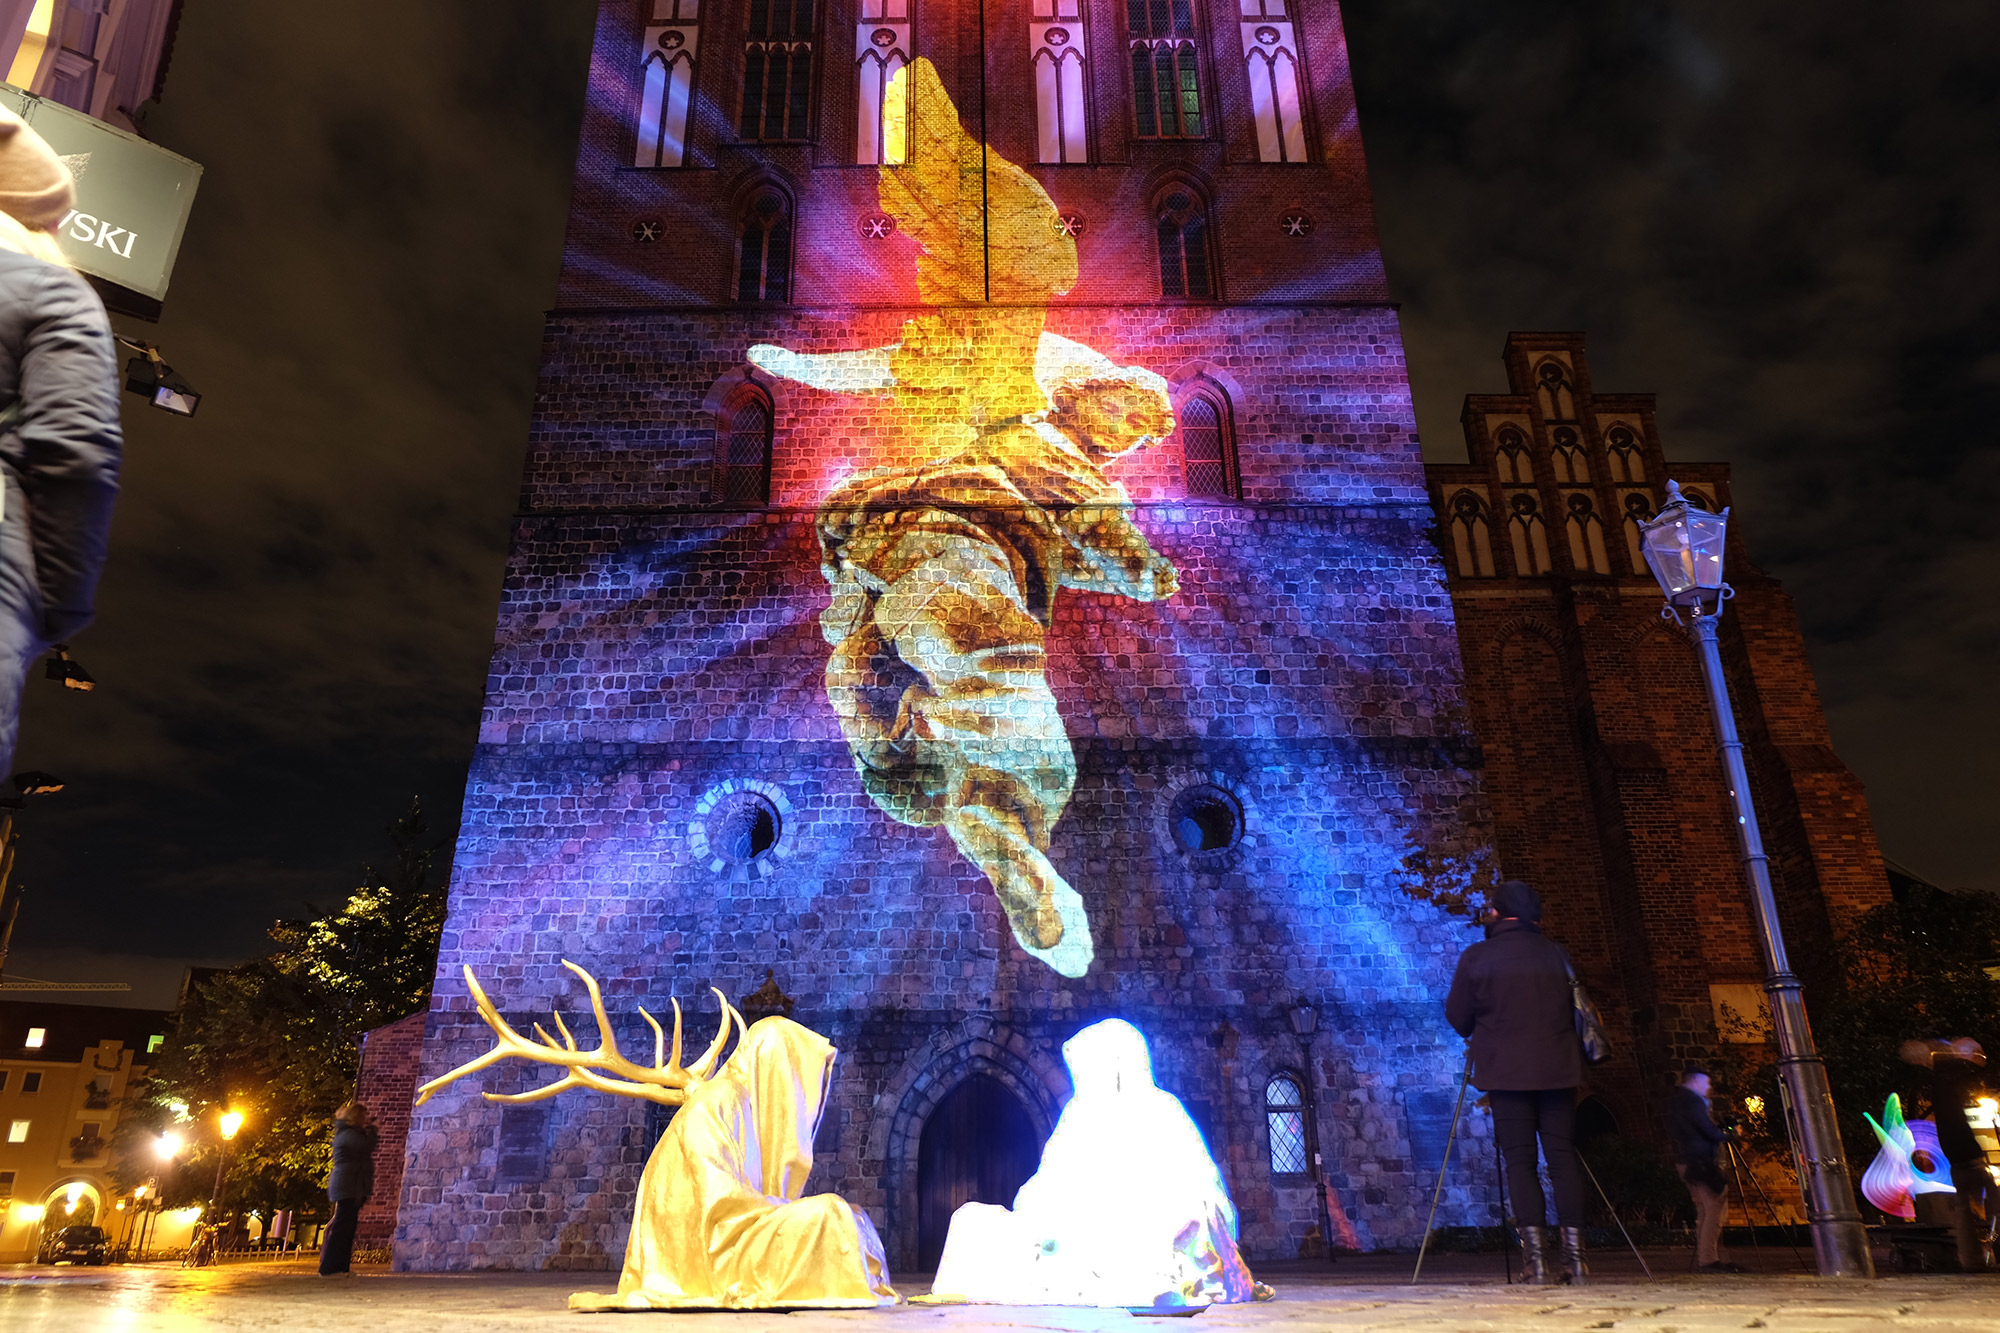 festival-of-lights-berlin-light-art-show-fine-arts-contemporary-art-design-modern-sculpture-statue-ghost-faceless-glow-lumina-8824